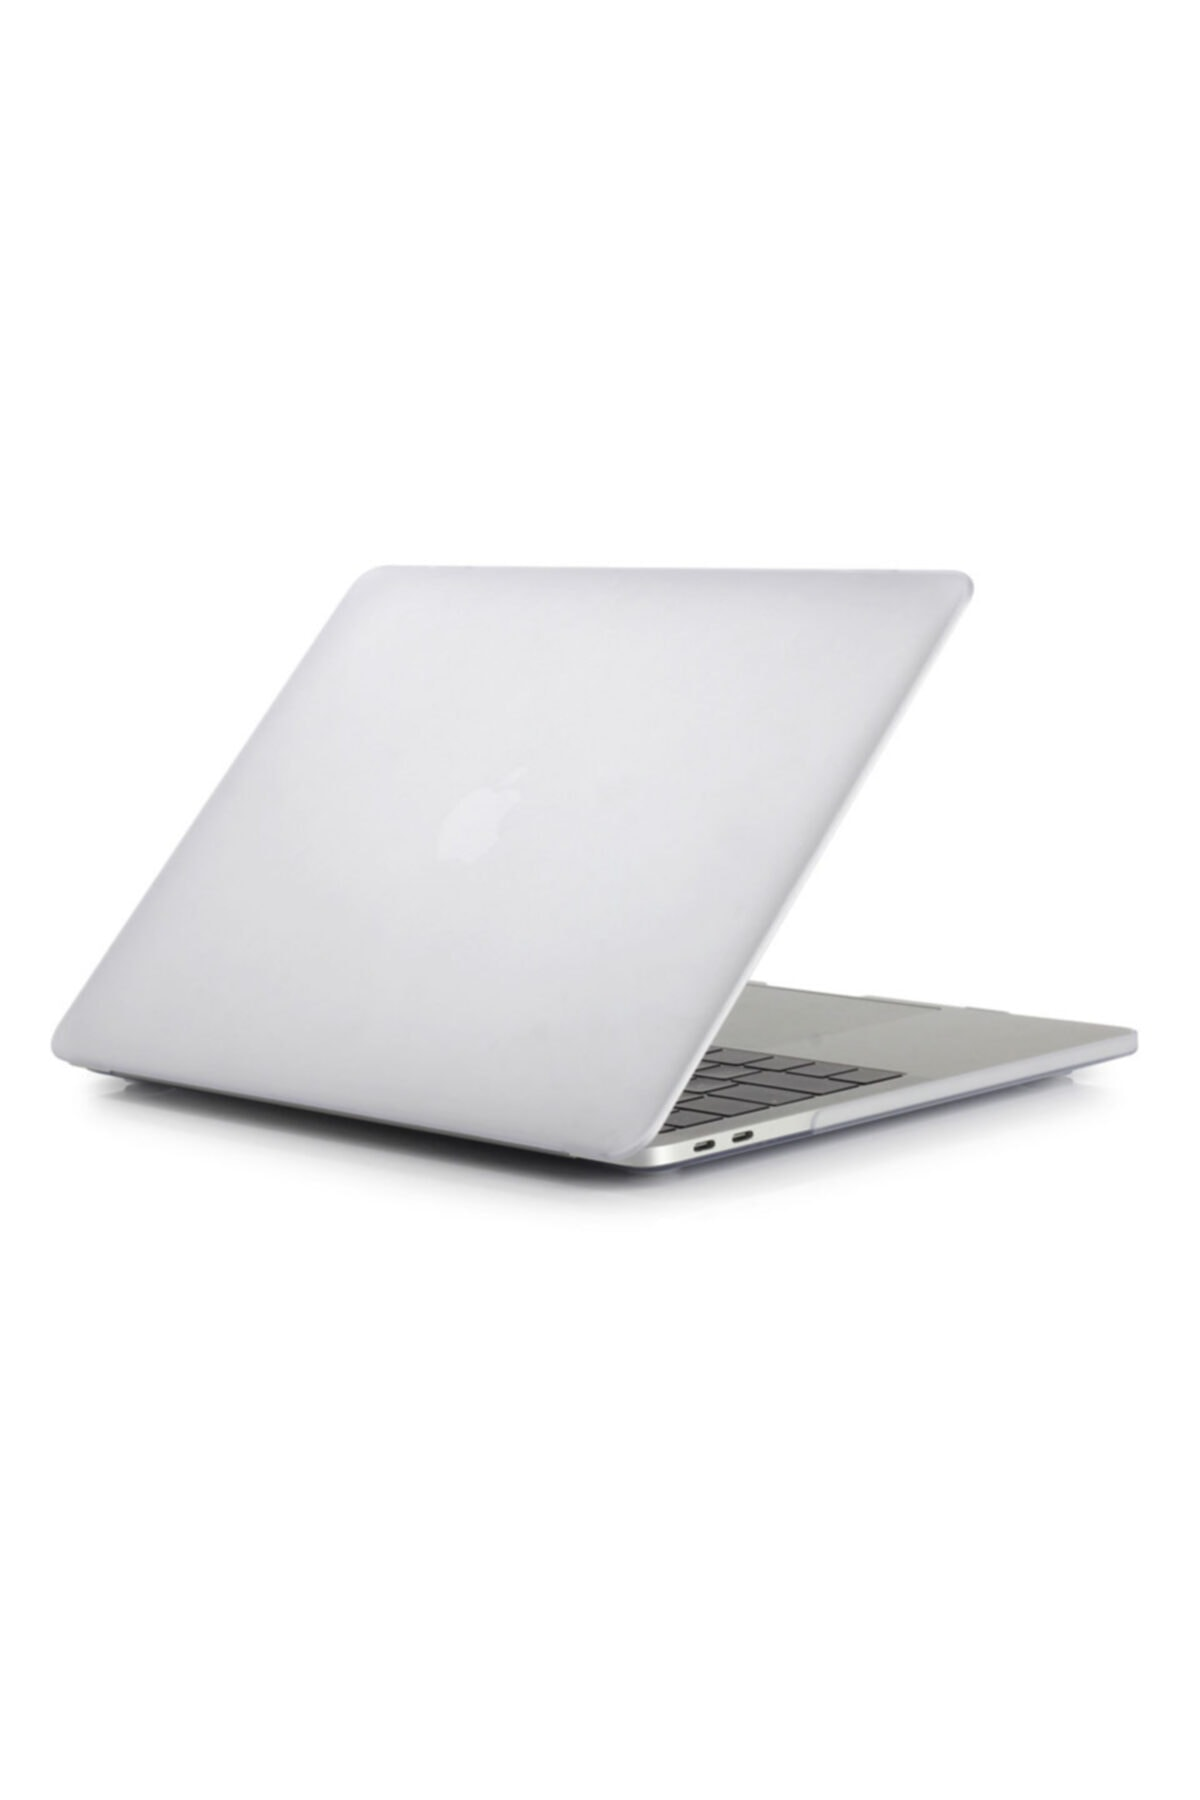 KIZILKAYA Apple Macbook Air 2020 Model A2179 13 Inç Touch Id Sert Kapak Koruma Kılıf Hardcase Mat 1